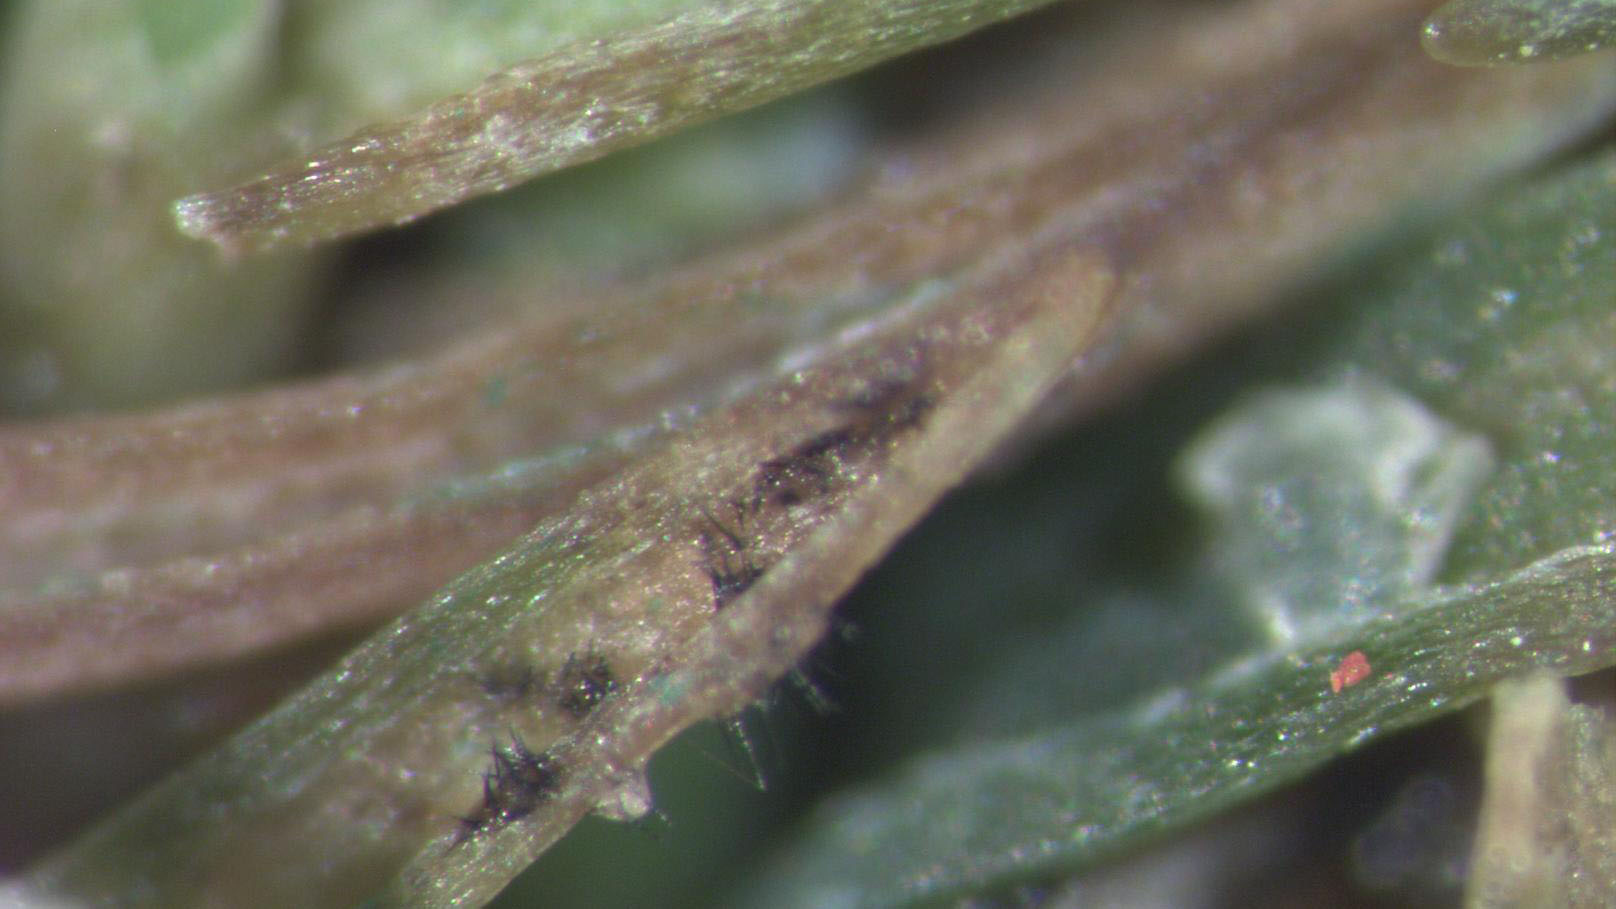 Anthracnose foliar signs